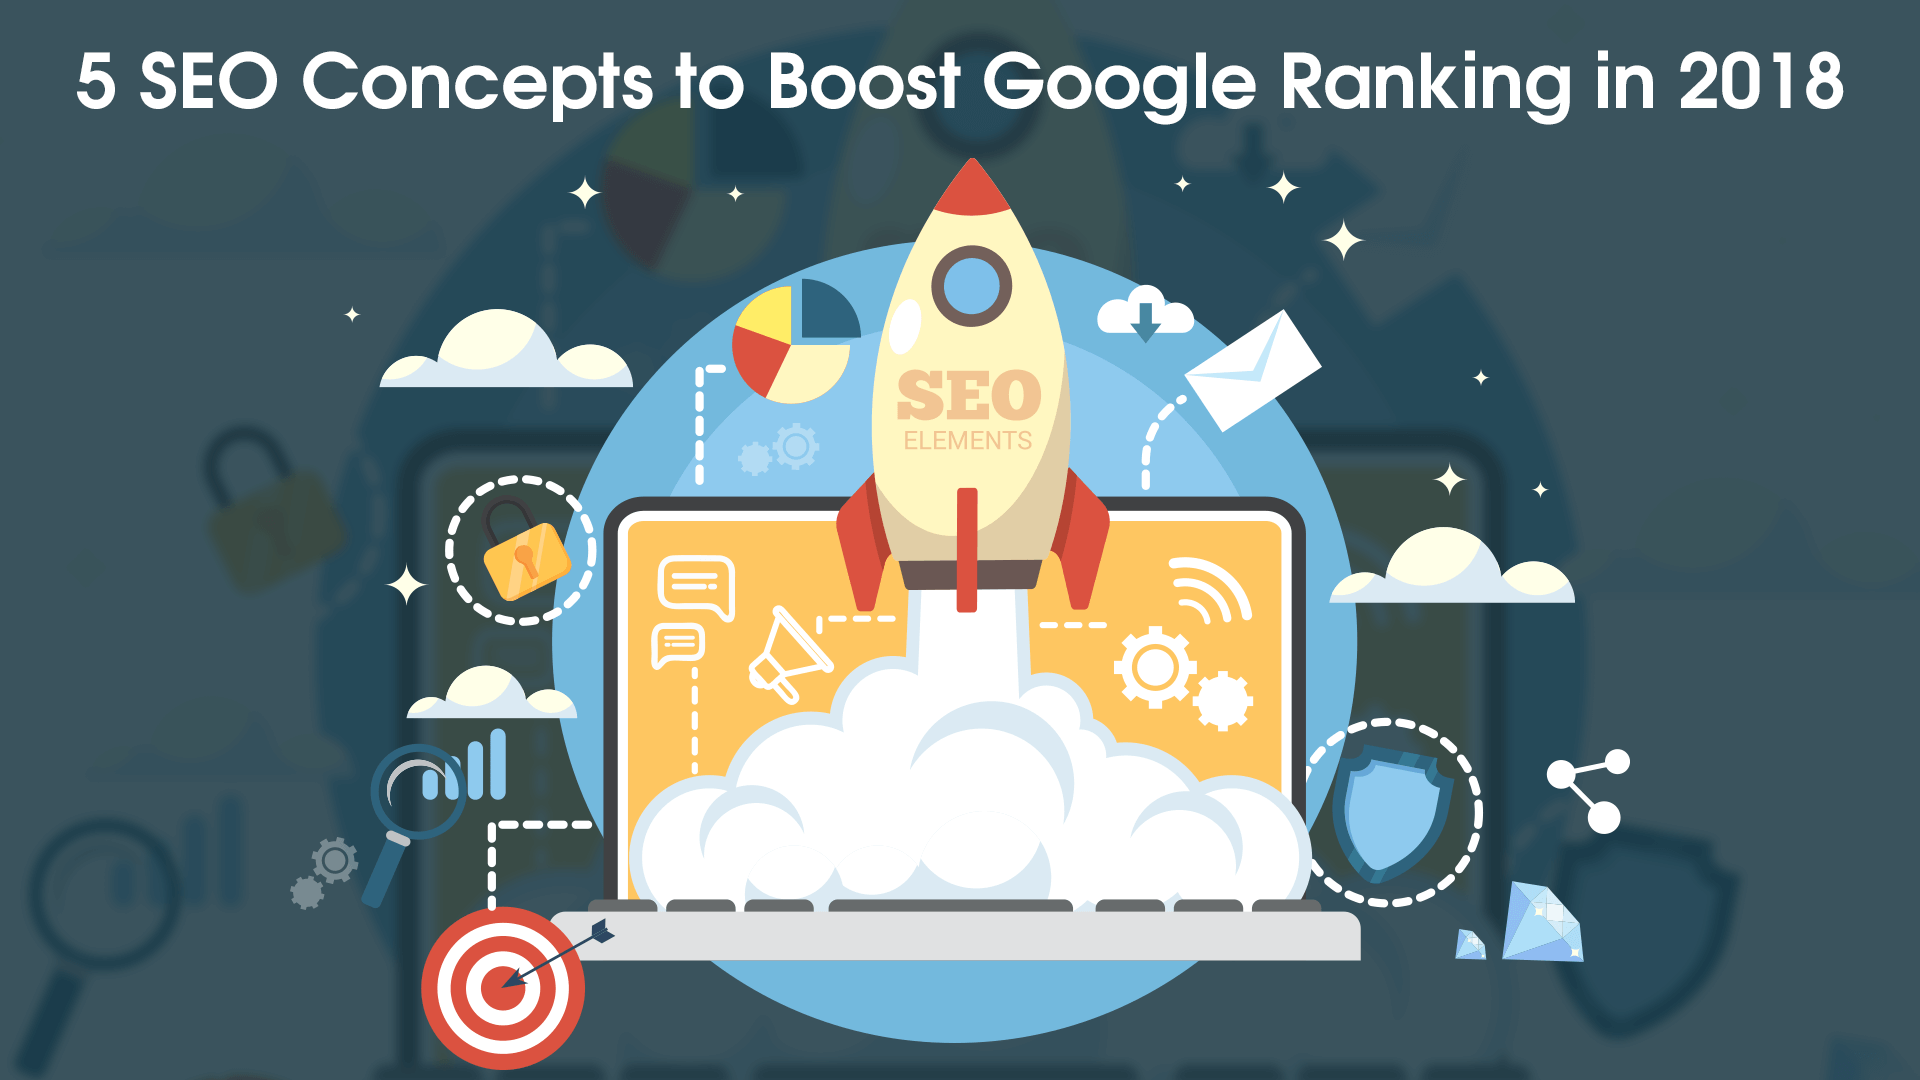 5 SEO Concepts to Boost Google Ranking in 2018 banner